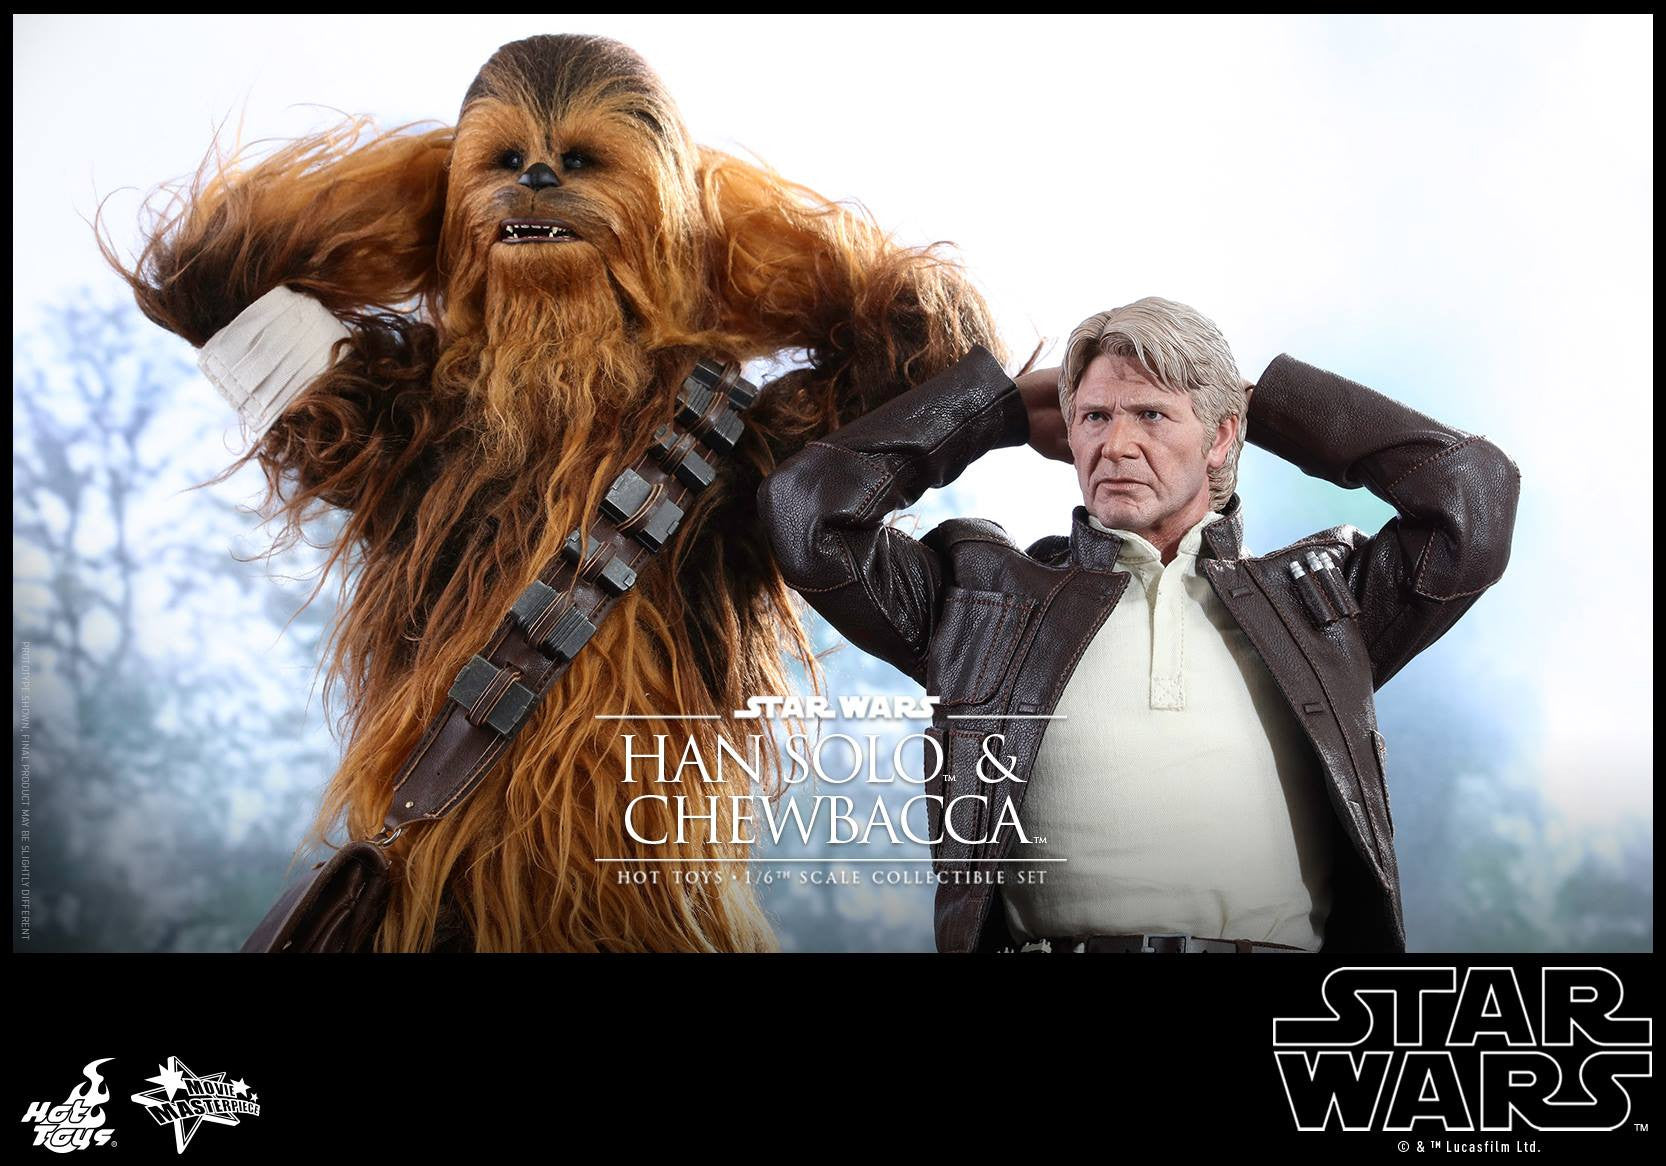 Hot Toys - MMS376 - Star Wars: The Force Awakens - Han Solo & Chewbacca Set - Marvelous Toys - 4